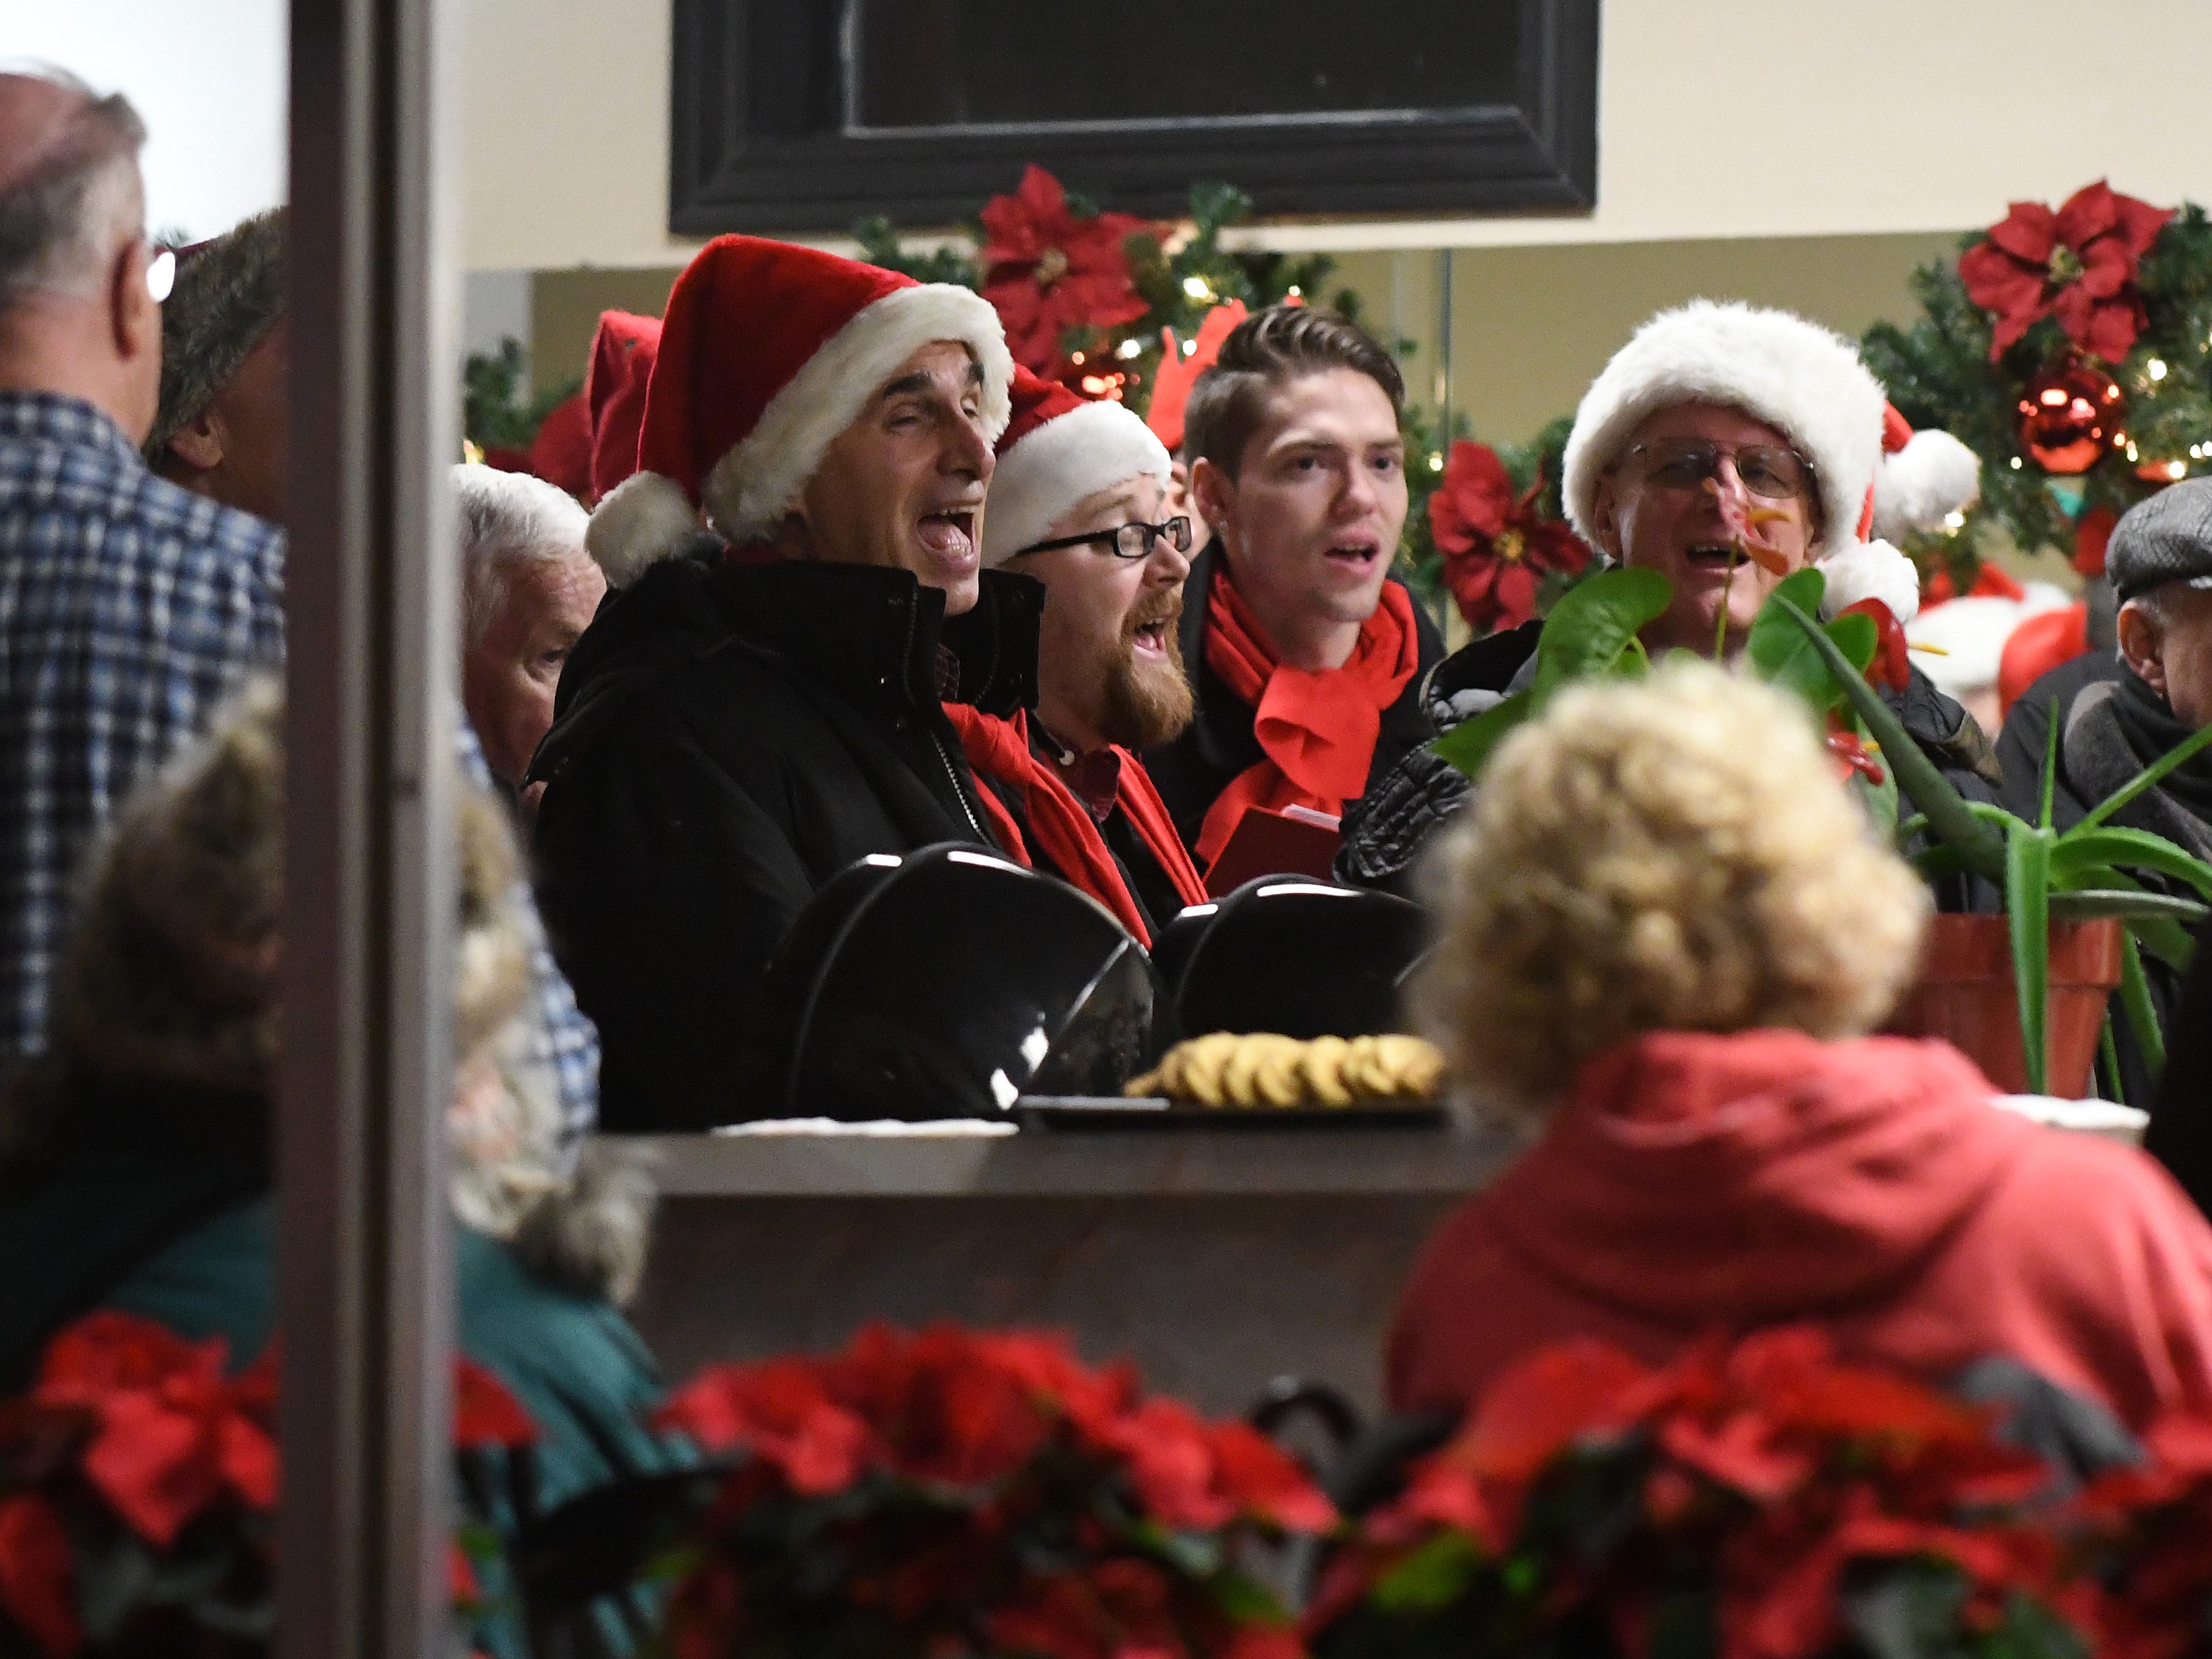 Christmas caroling inside the Goldfingers Salon off Main Street in downtown Rochester.